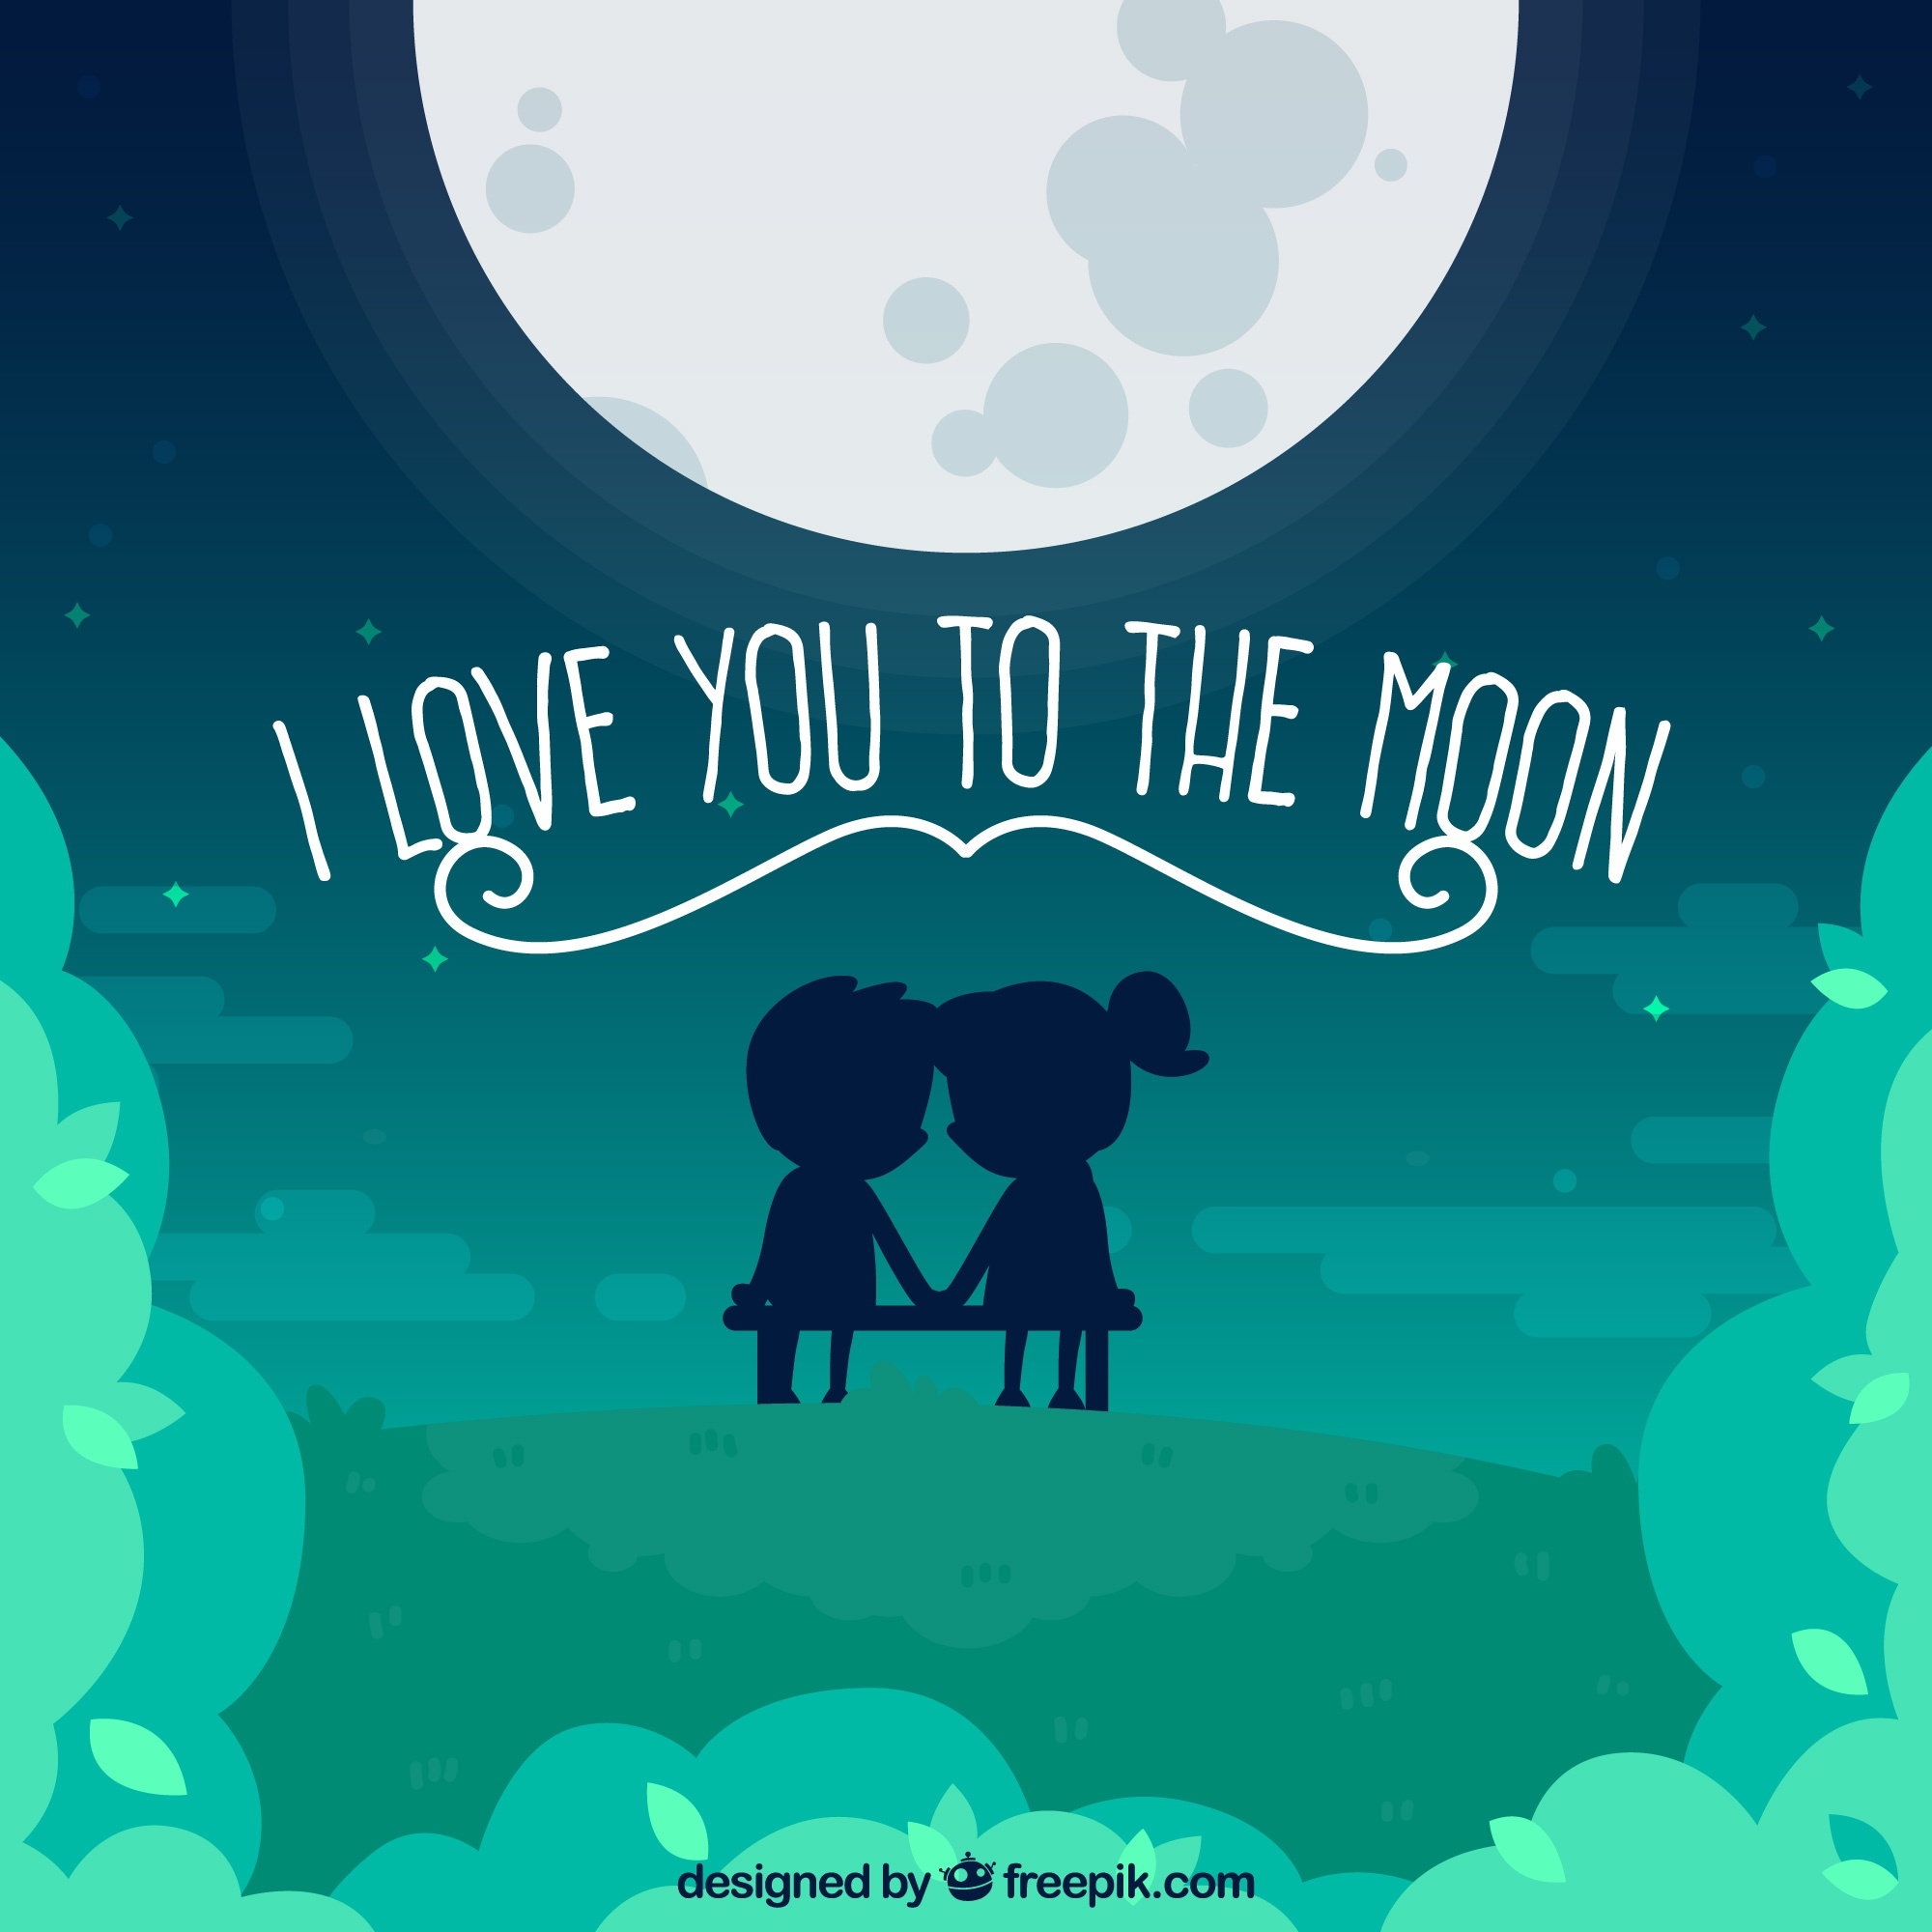 Moon background with cute couple and romantic message